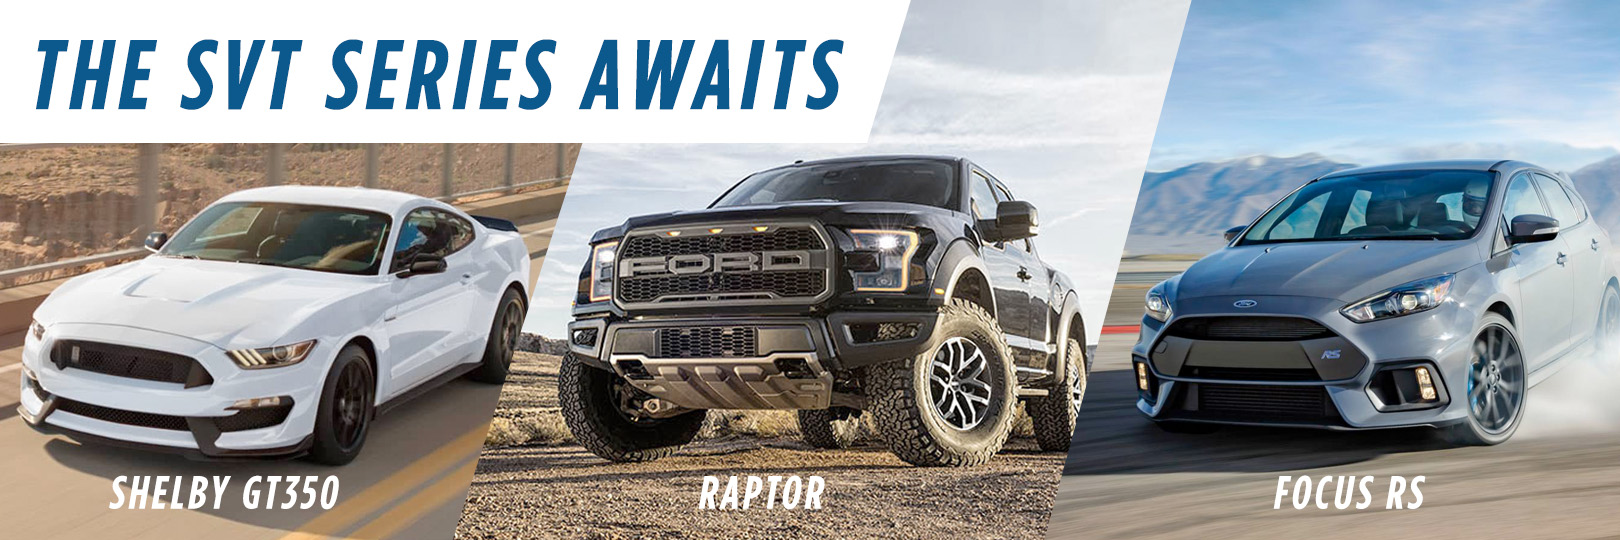 Shop the Ford SVT Performance Series in Wilkes-Barre